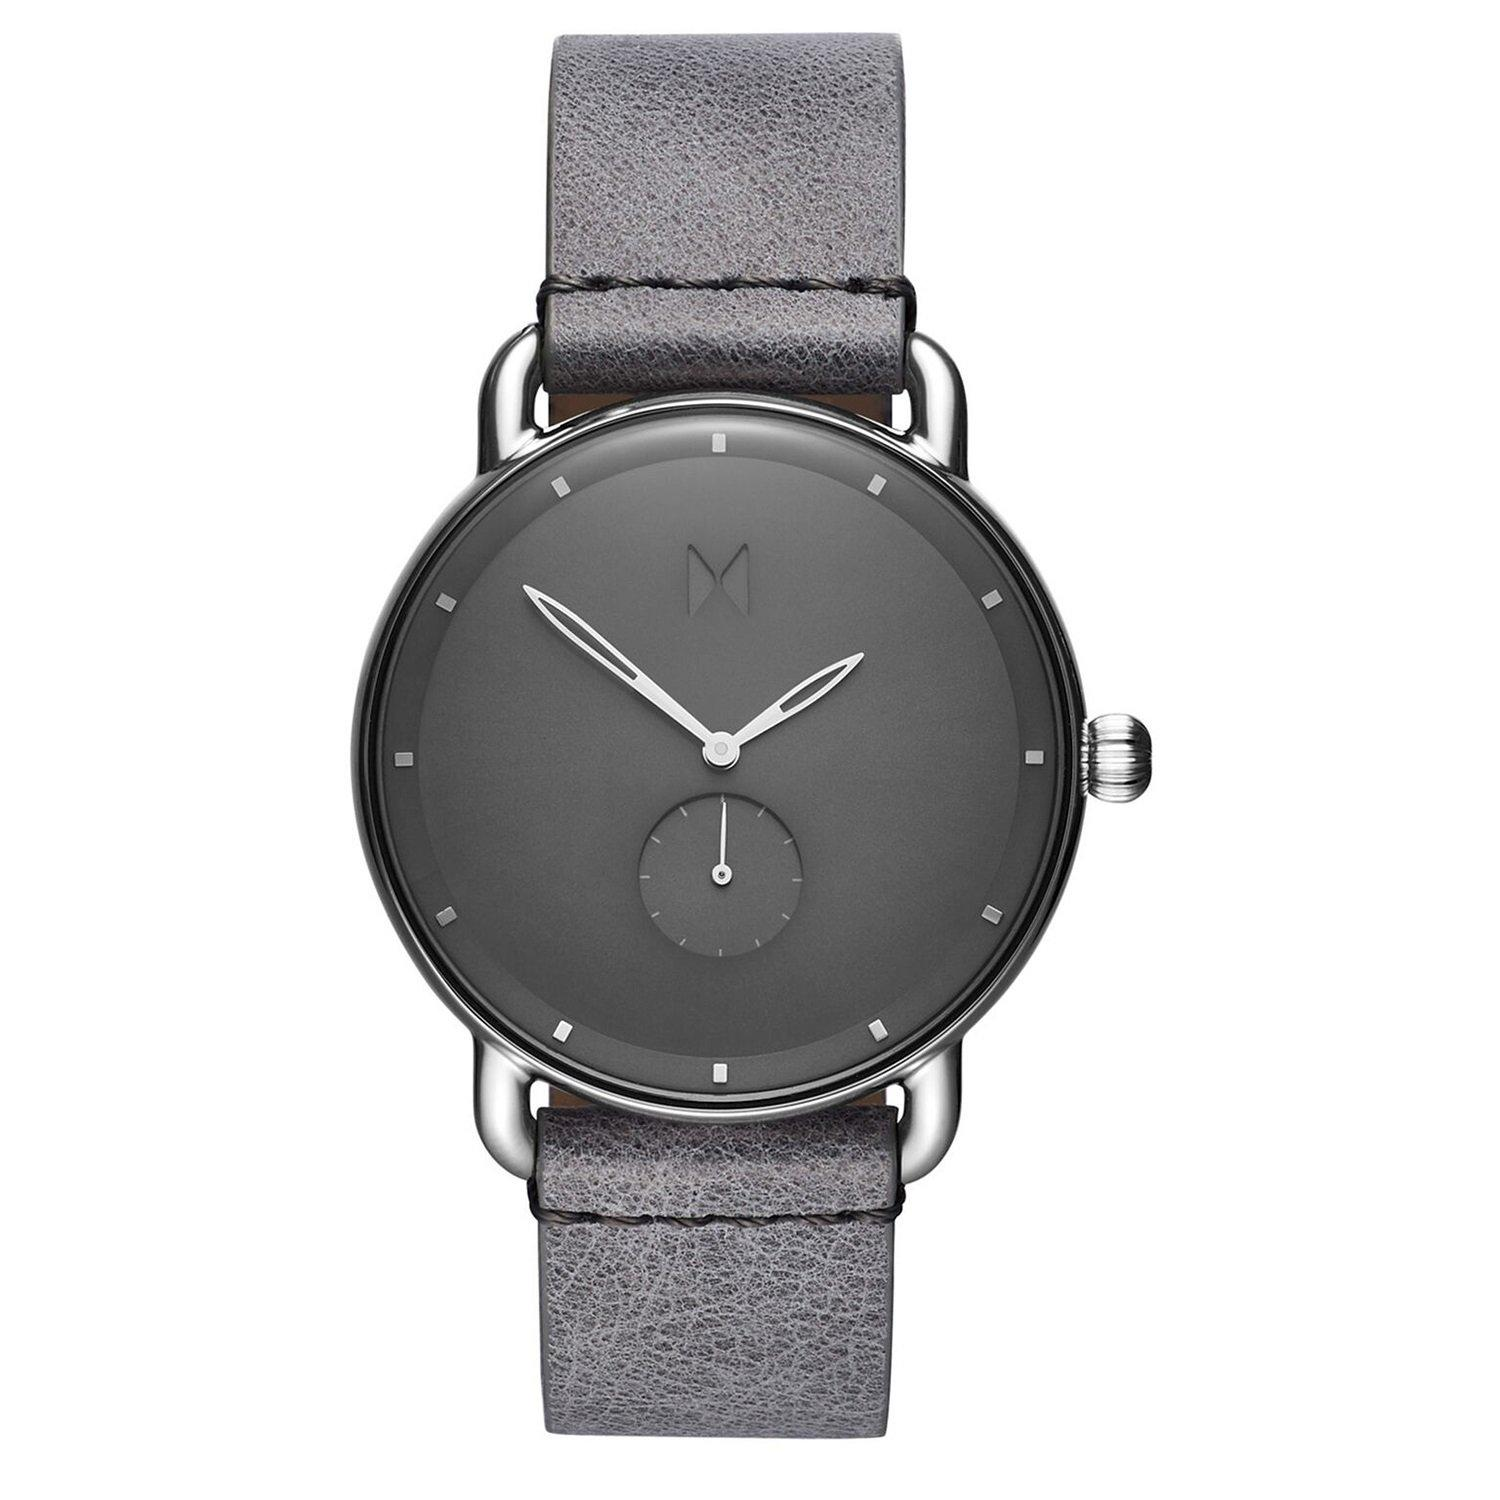 MVMT Revolver Grey Men's Watch